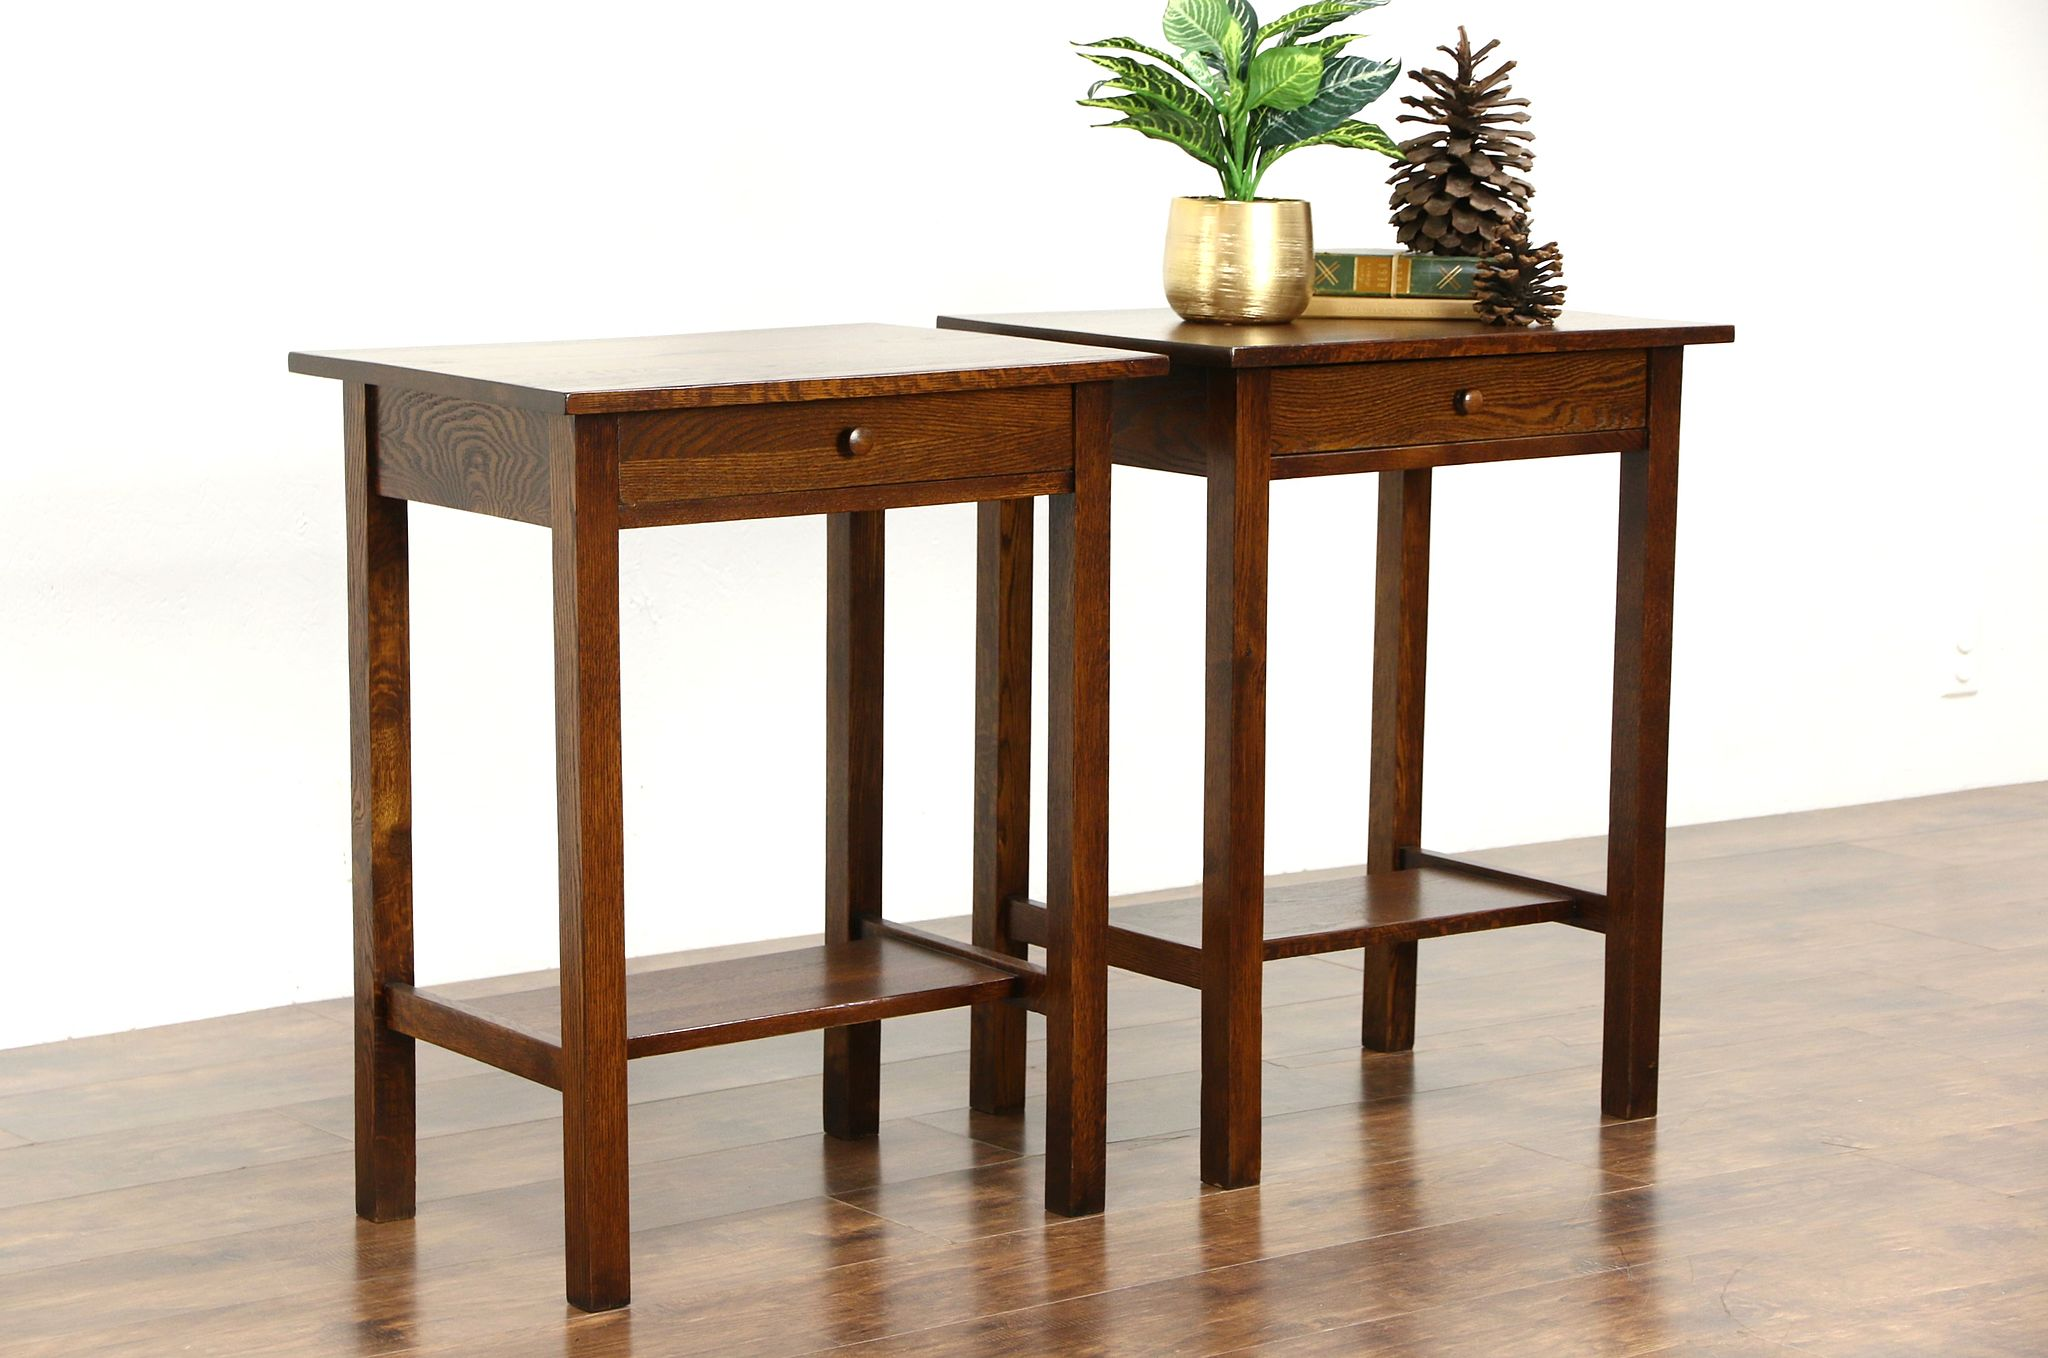 Pair Of Mission Oak Arts Crafts Antique Craftsman Nightstands Or End Tables